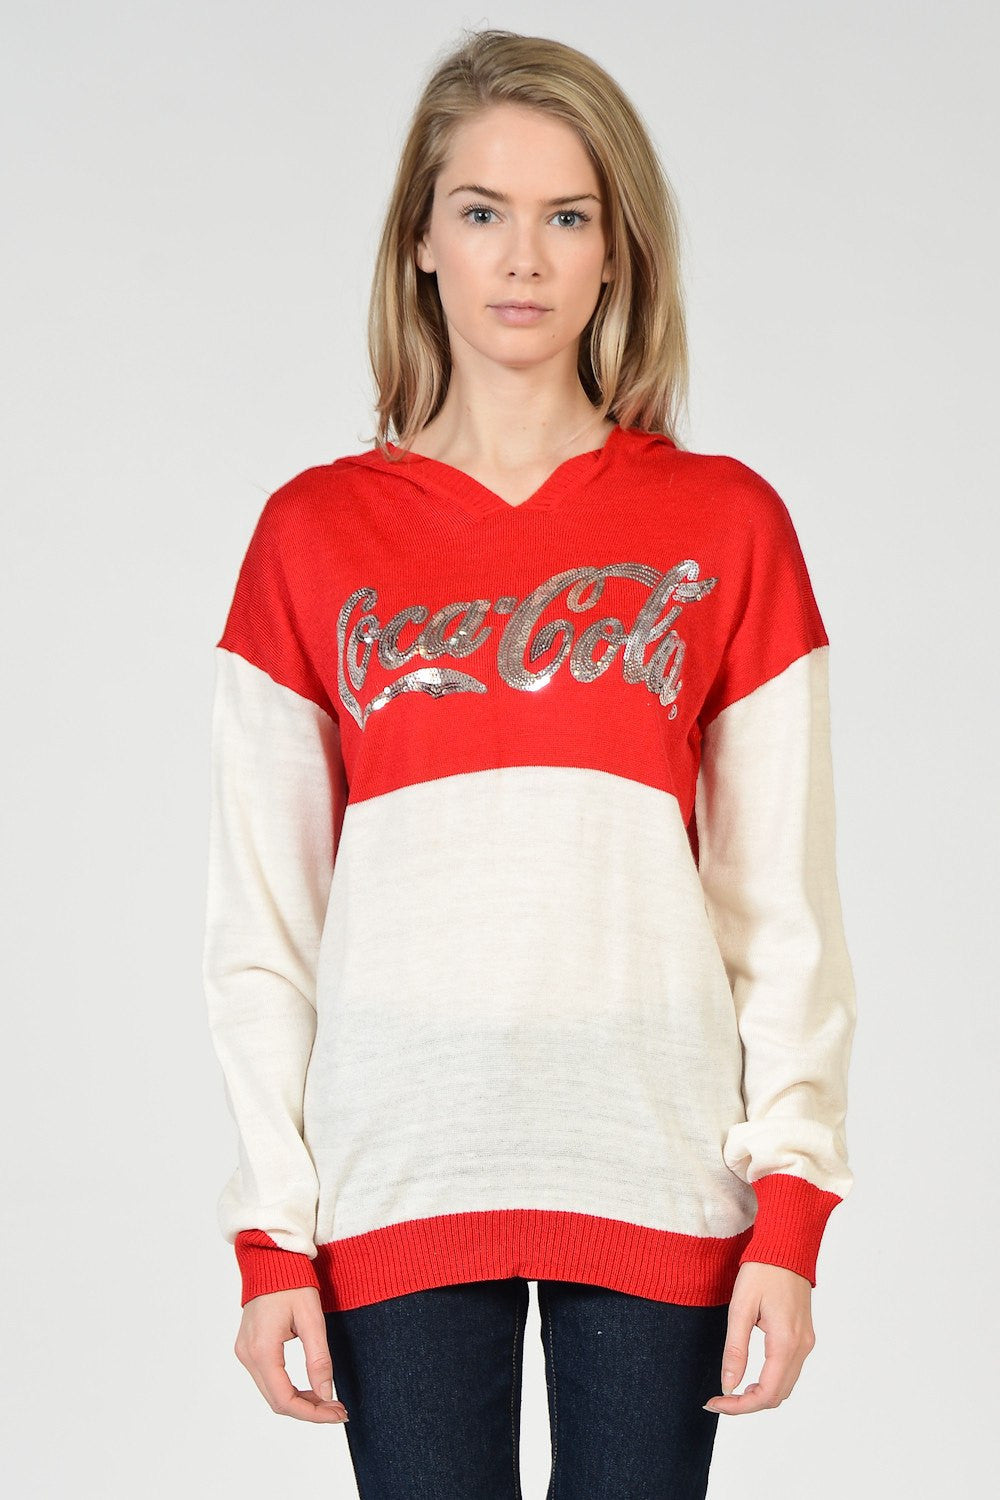 Coca Cola Sweater Hoodies